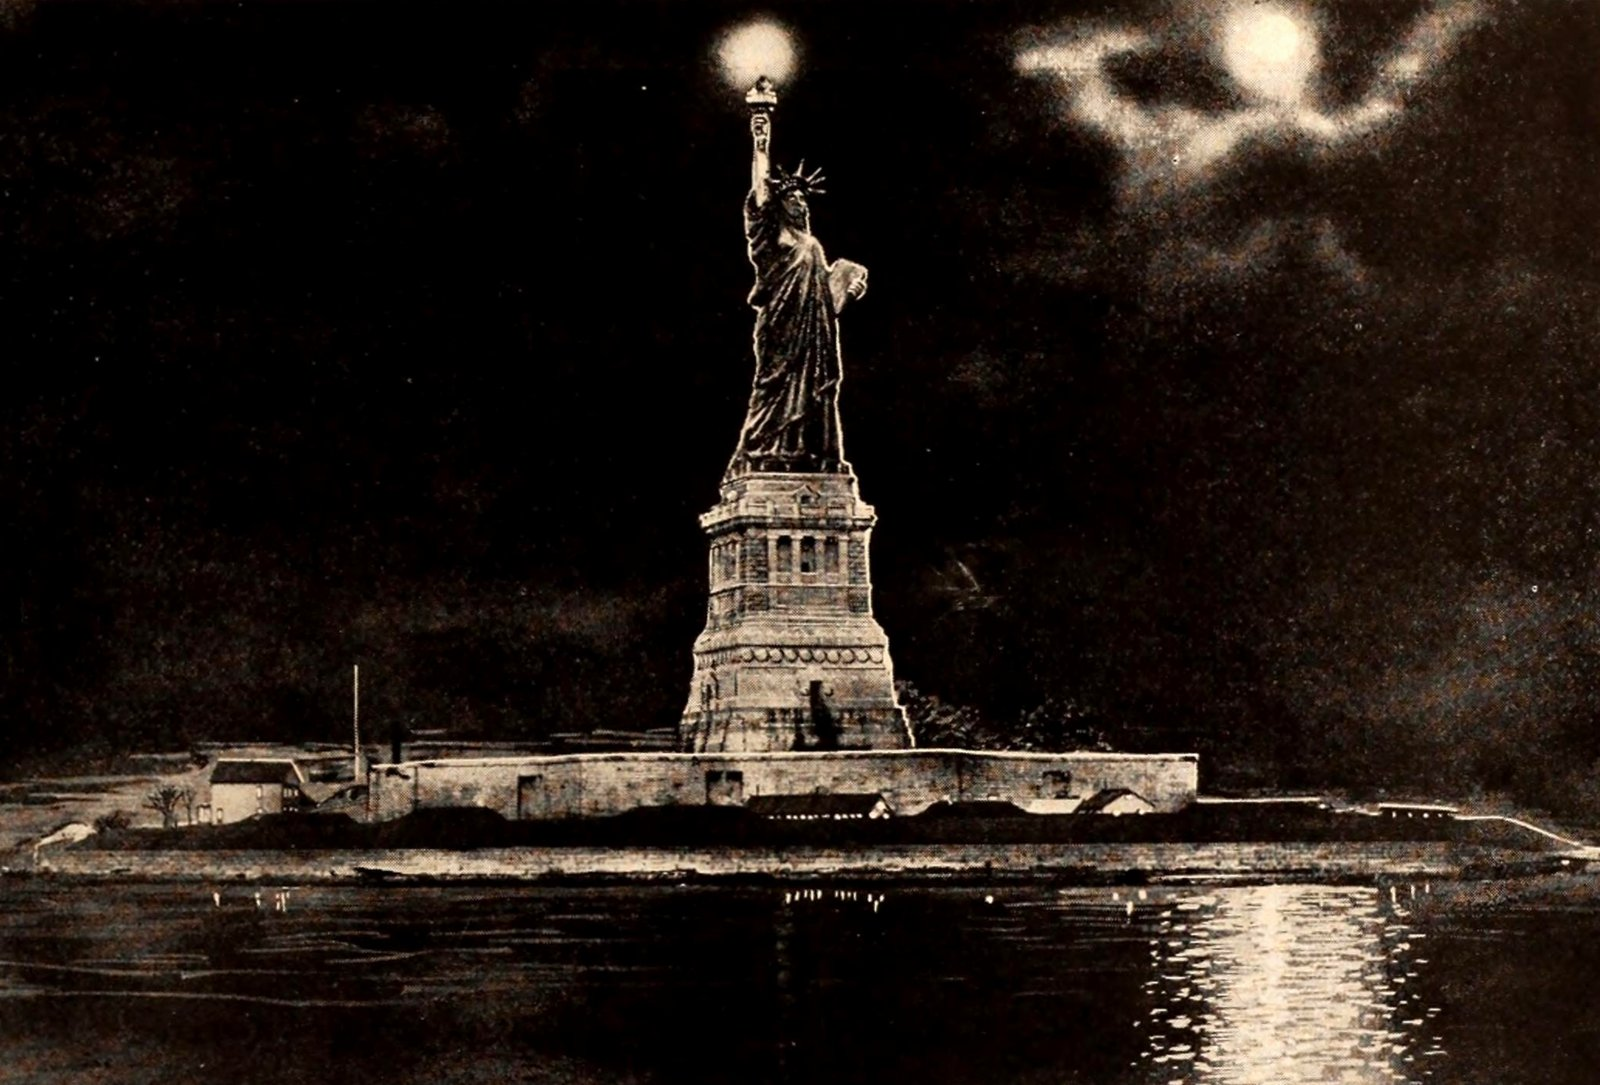 The Statue of Liberty at night (1924)